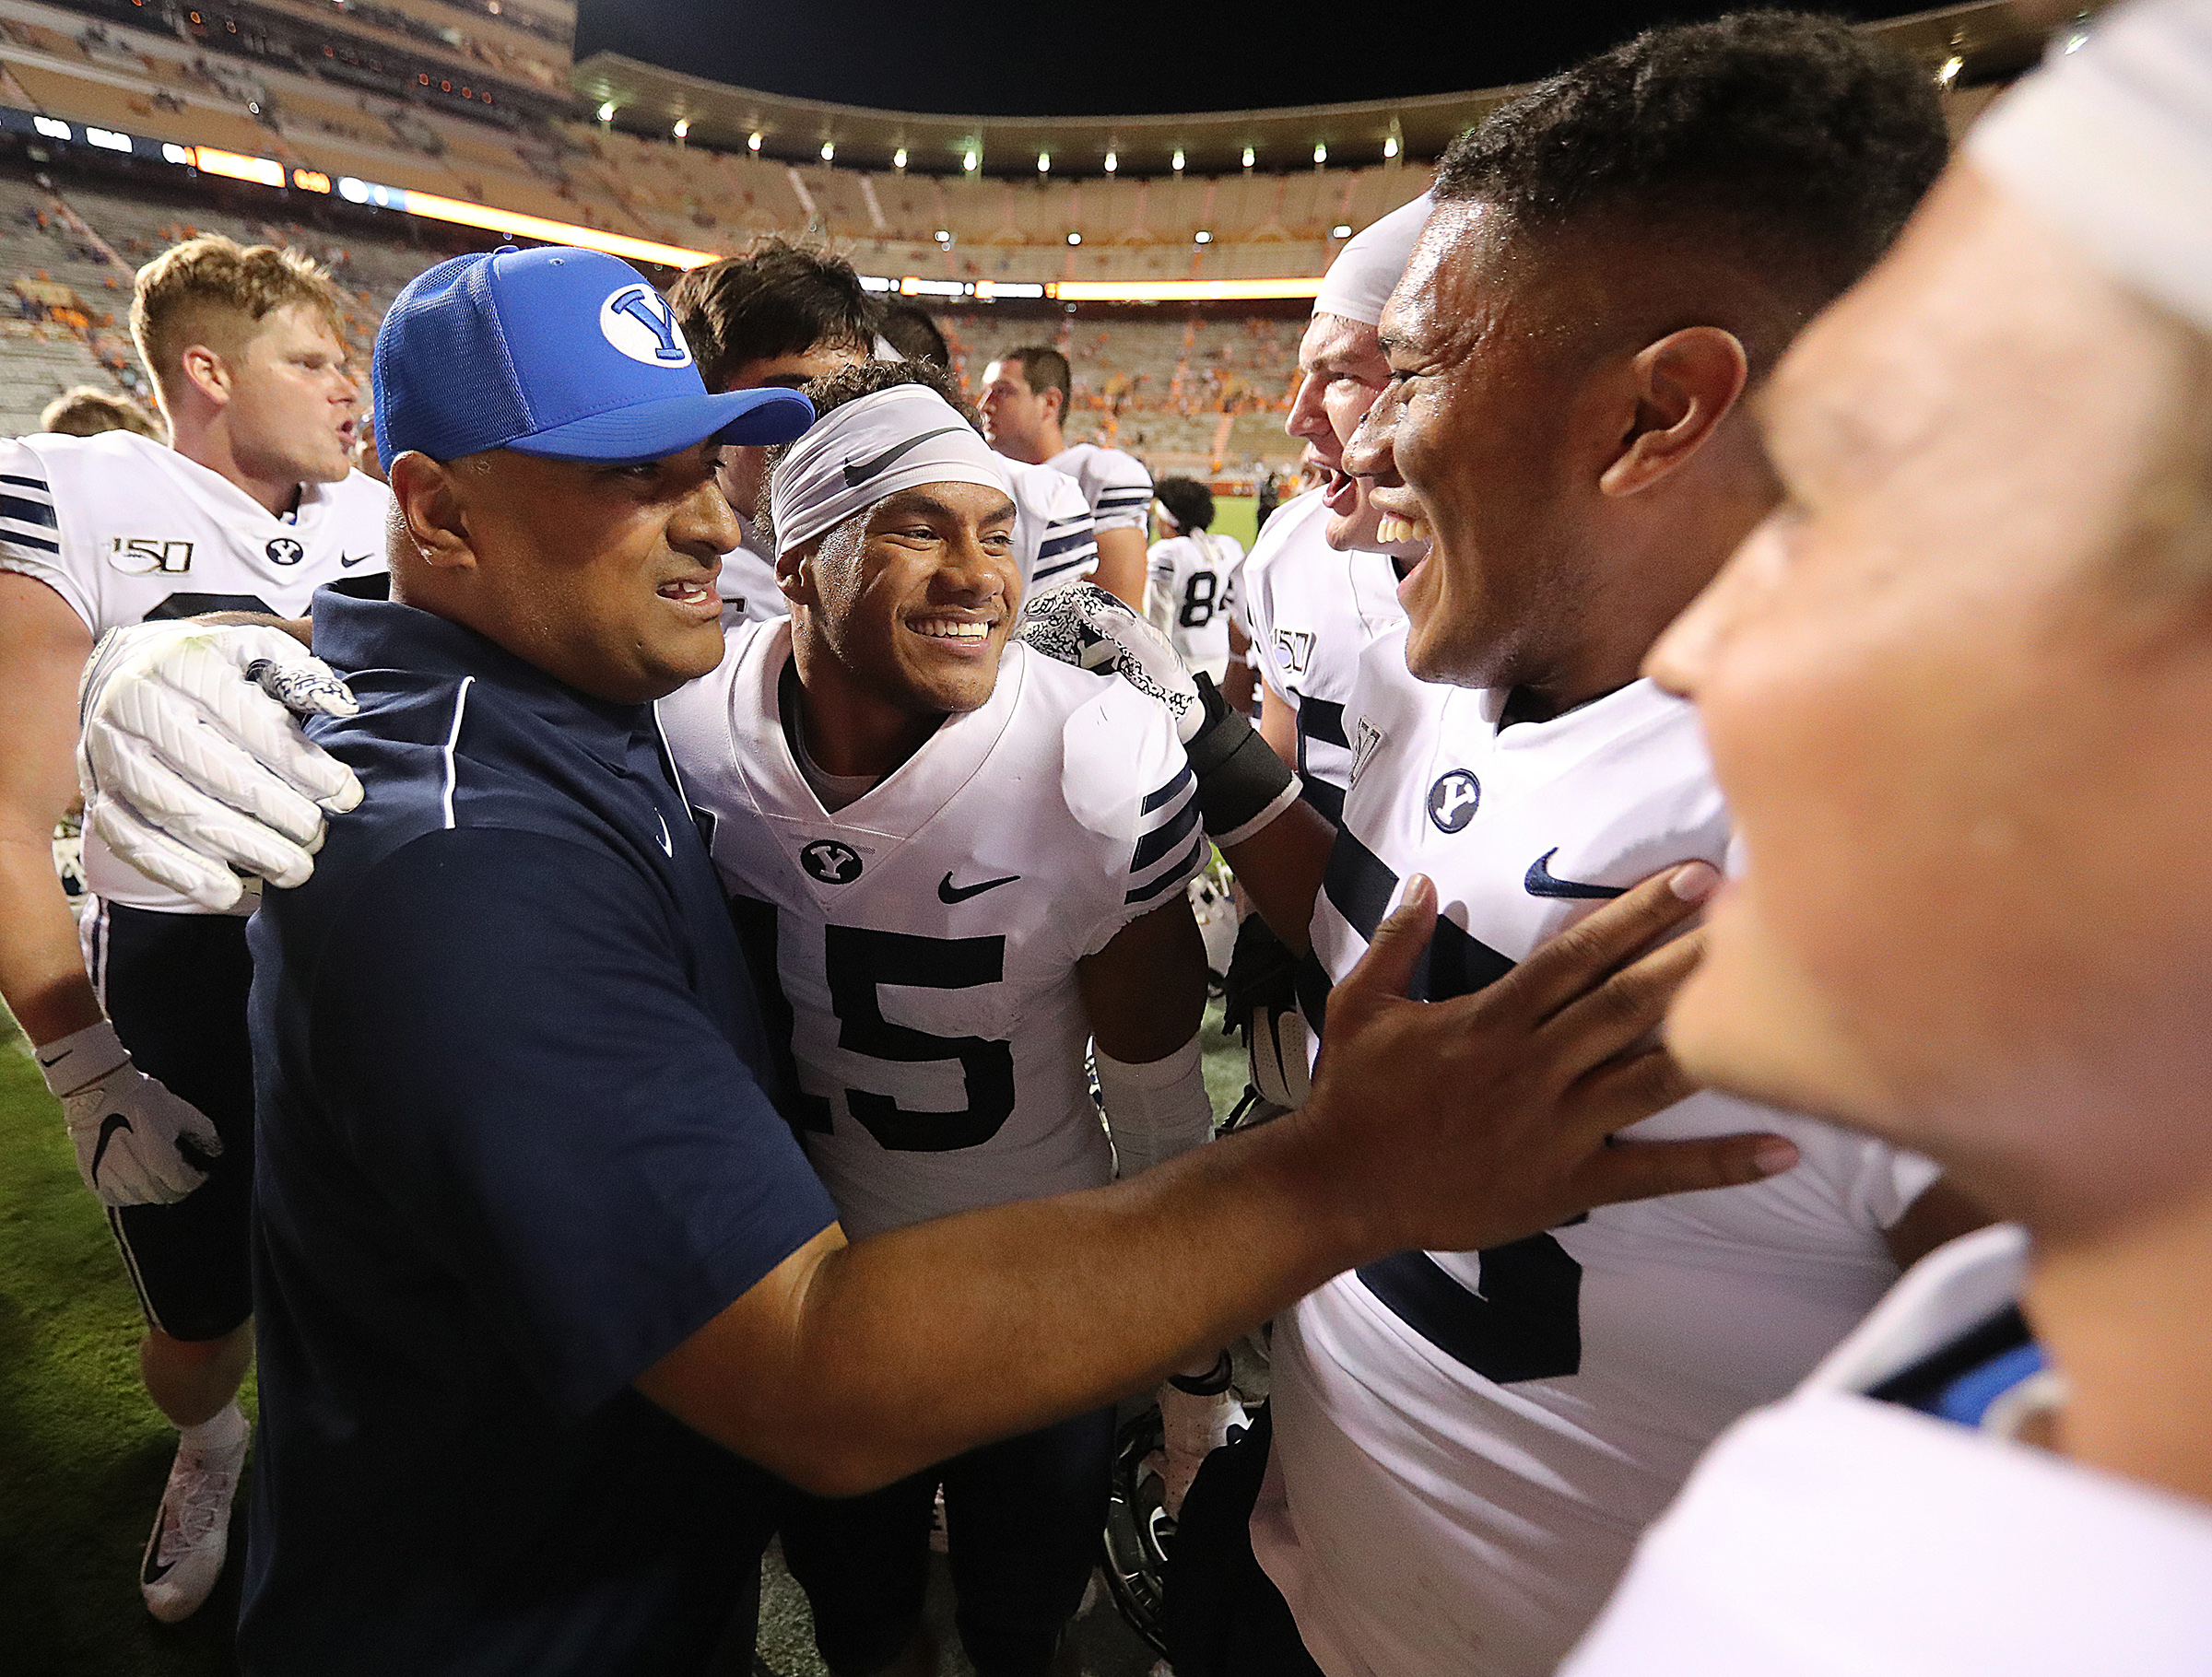 Head coach Kalani Sitake and his players celebrate their win over Tennessee in Knoxville on Saturday, Sept. 7, 2019. BYU won 29-26 in double overtime.